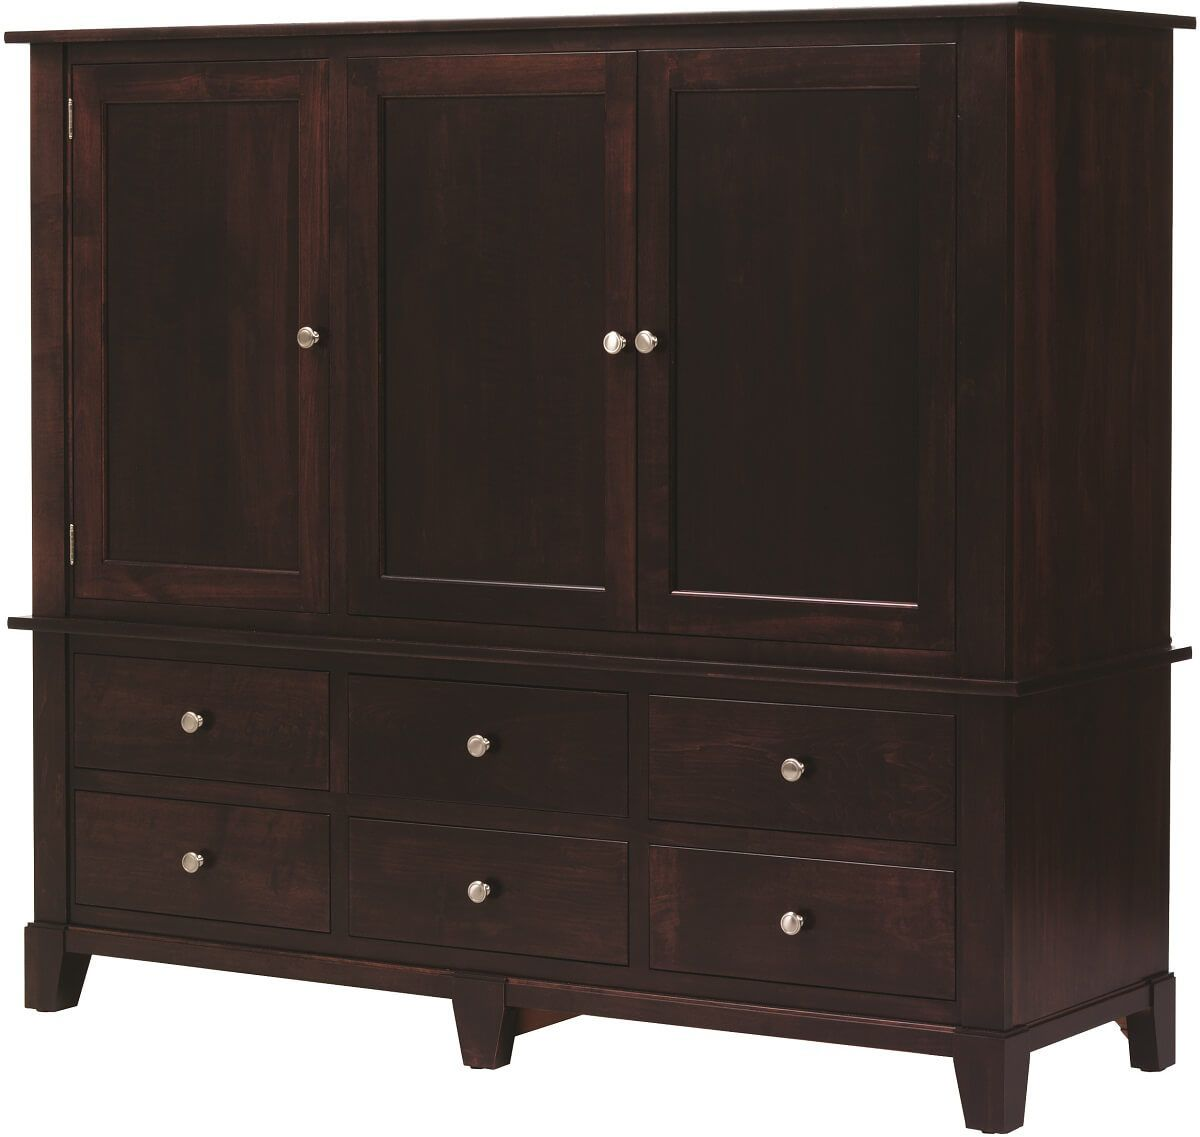 Darien Bedroom Entertainment Center